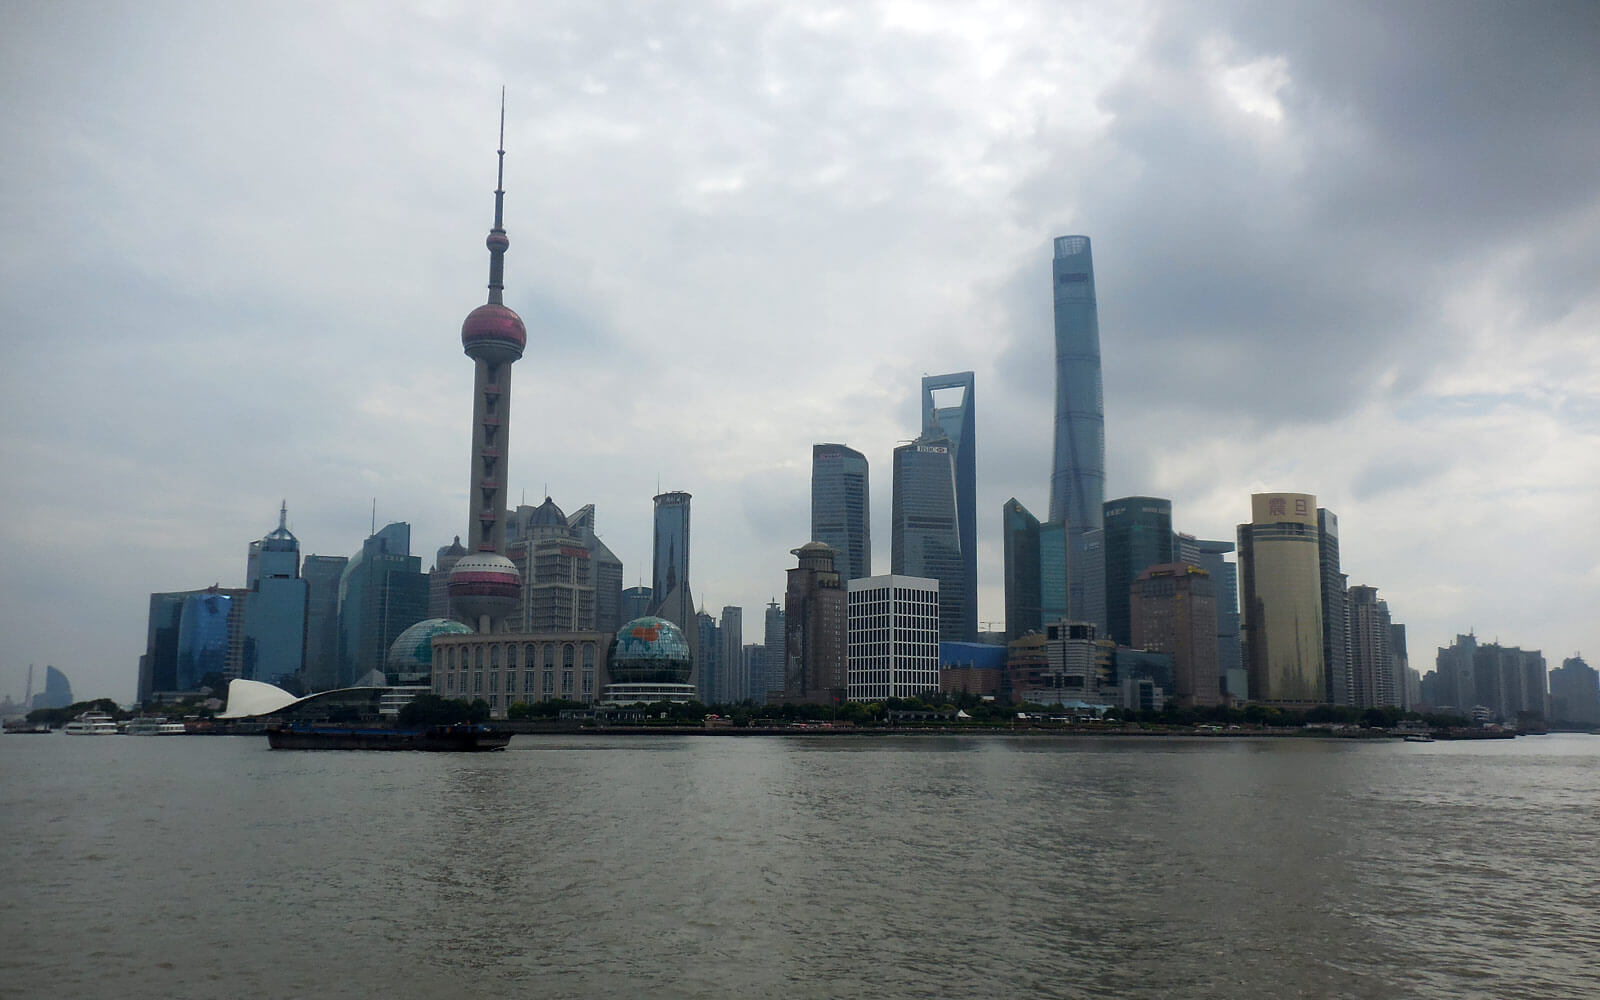 Sehenswürdigkeit in China: Shanghai The Bund